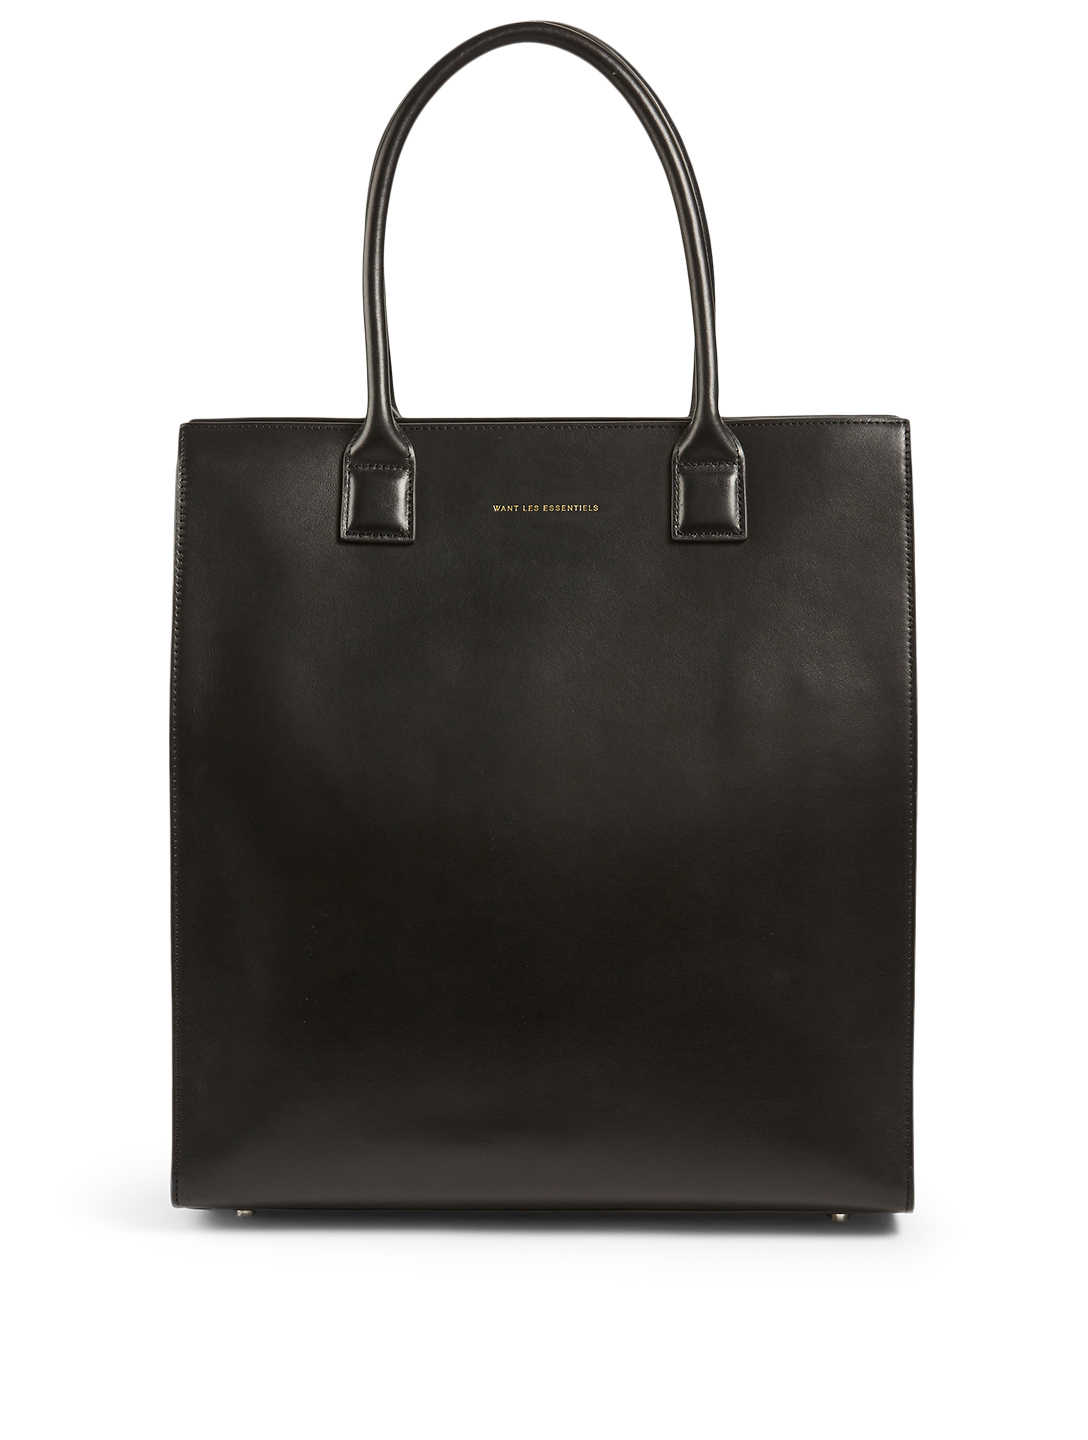 WANT LES ESSENTIELS Aberdeen Structured Leather Tote Bag Women's Black